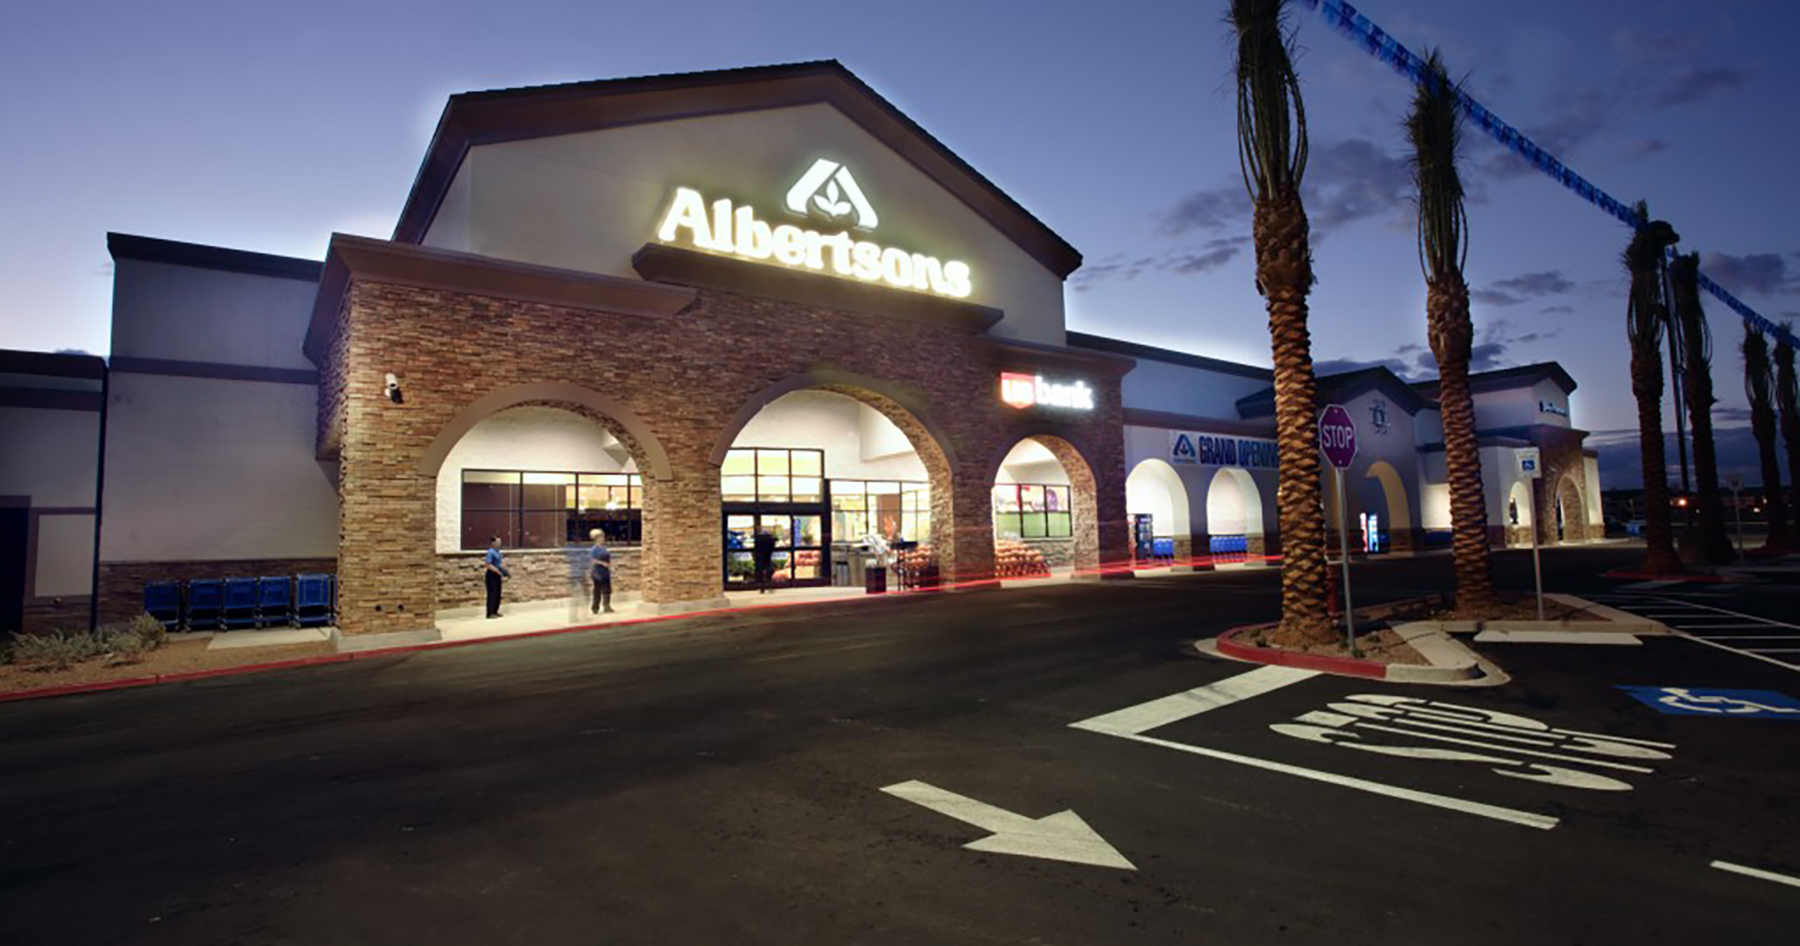 Albertsons, Greycroft to Invest $50M in New Grocery Companies